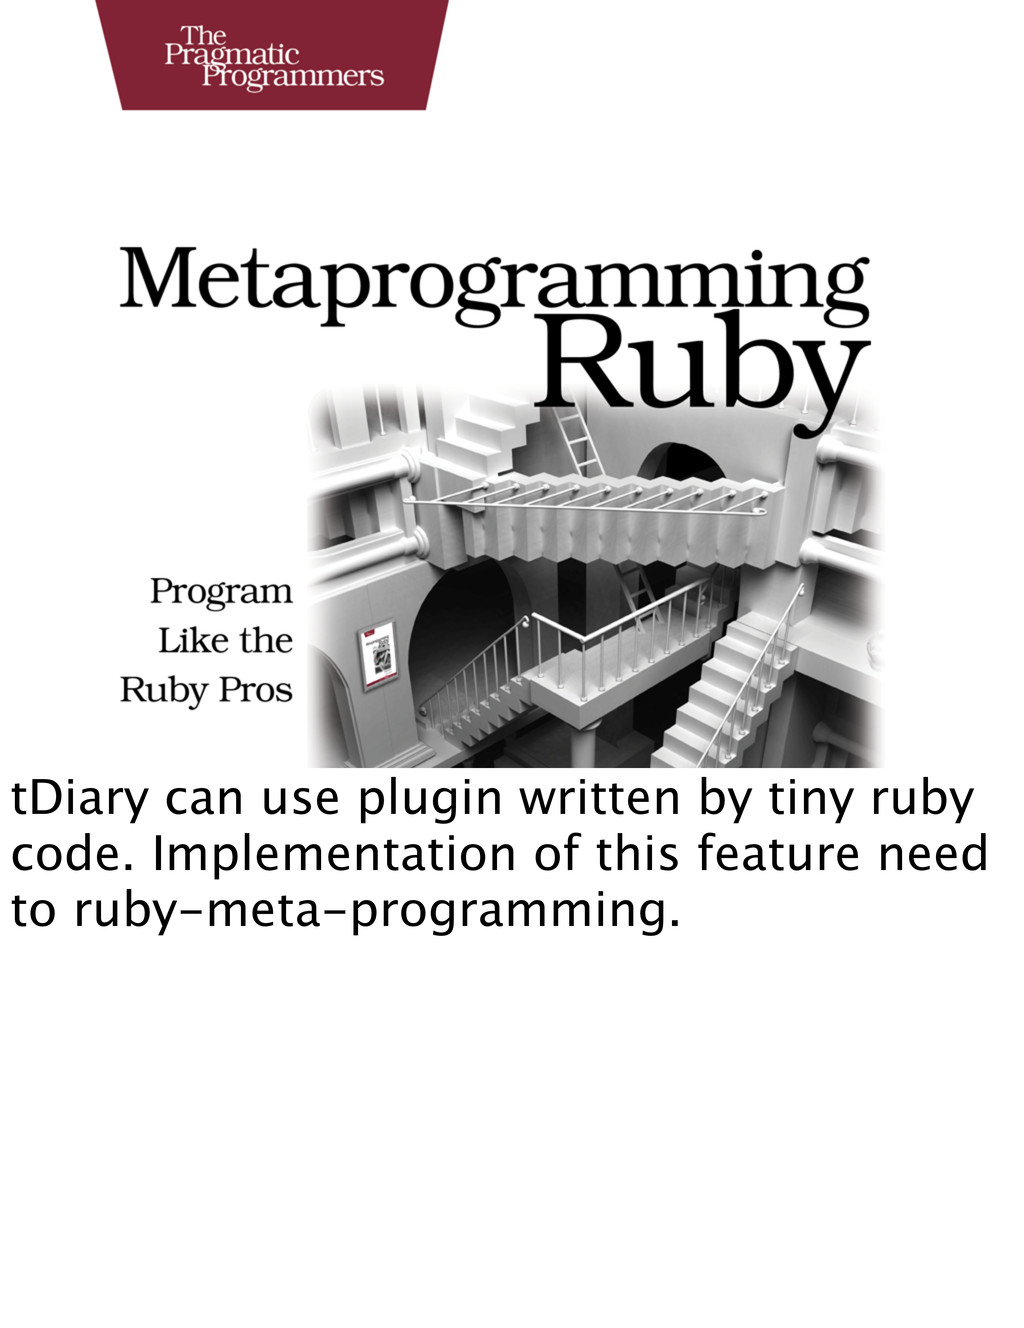 tDiary can use plugin written by tiny ruby code...